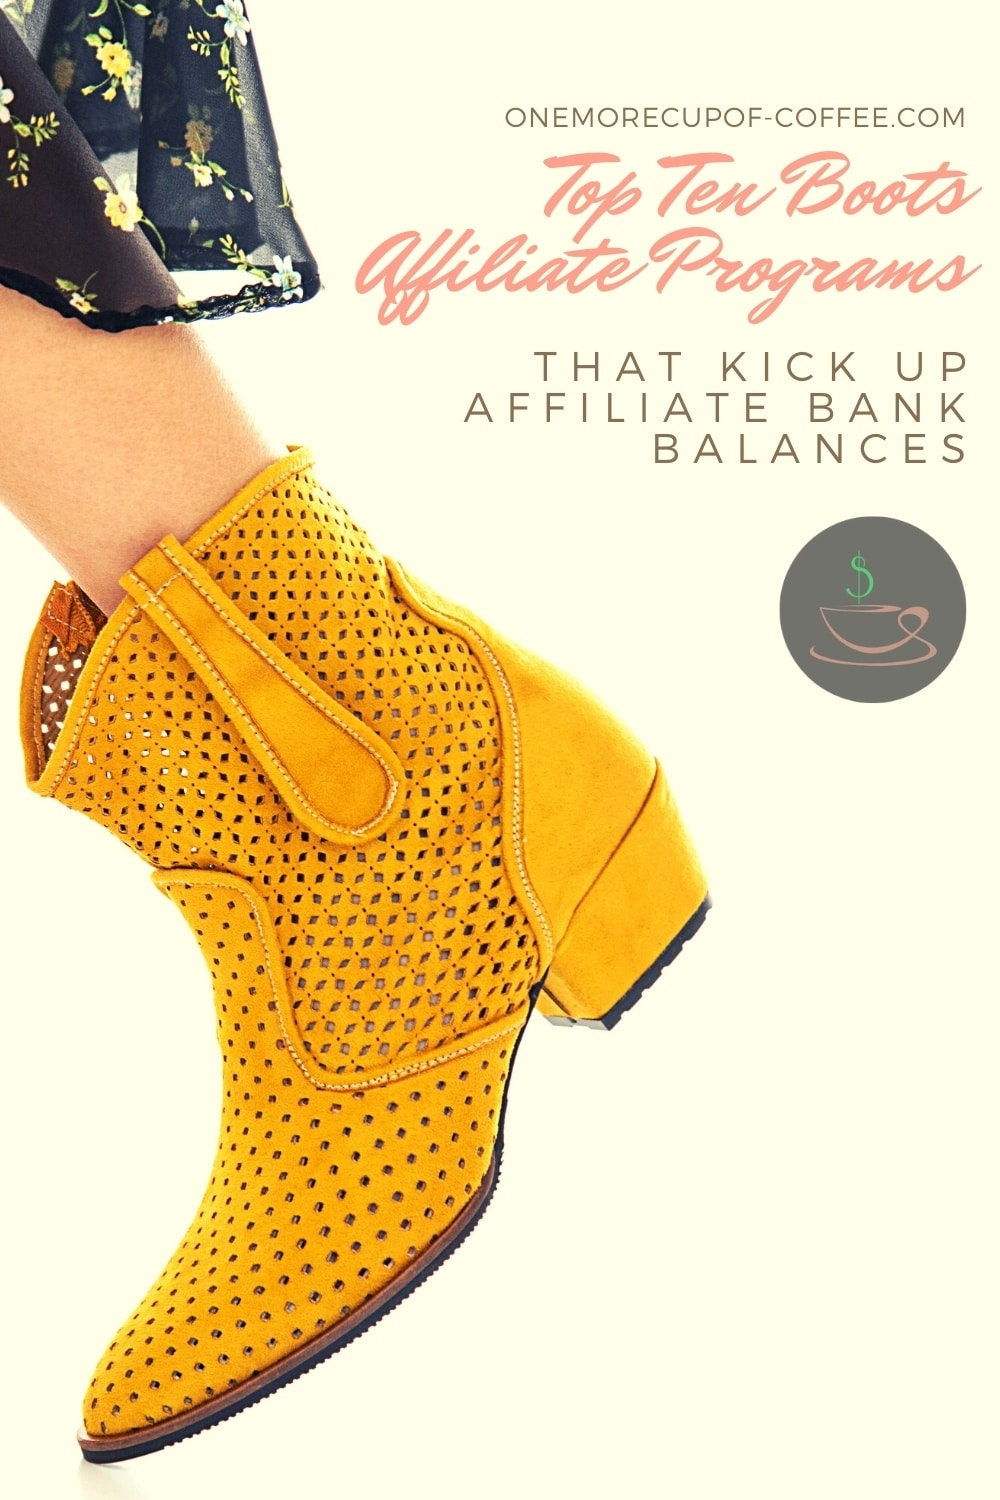 """yellow mustard ankle boot, with text overlay """"Top Ten Boots Affiliate Programs That Kick Up Affiliate Bank Balances"""""""